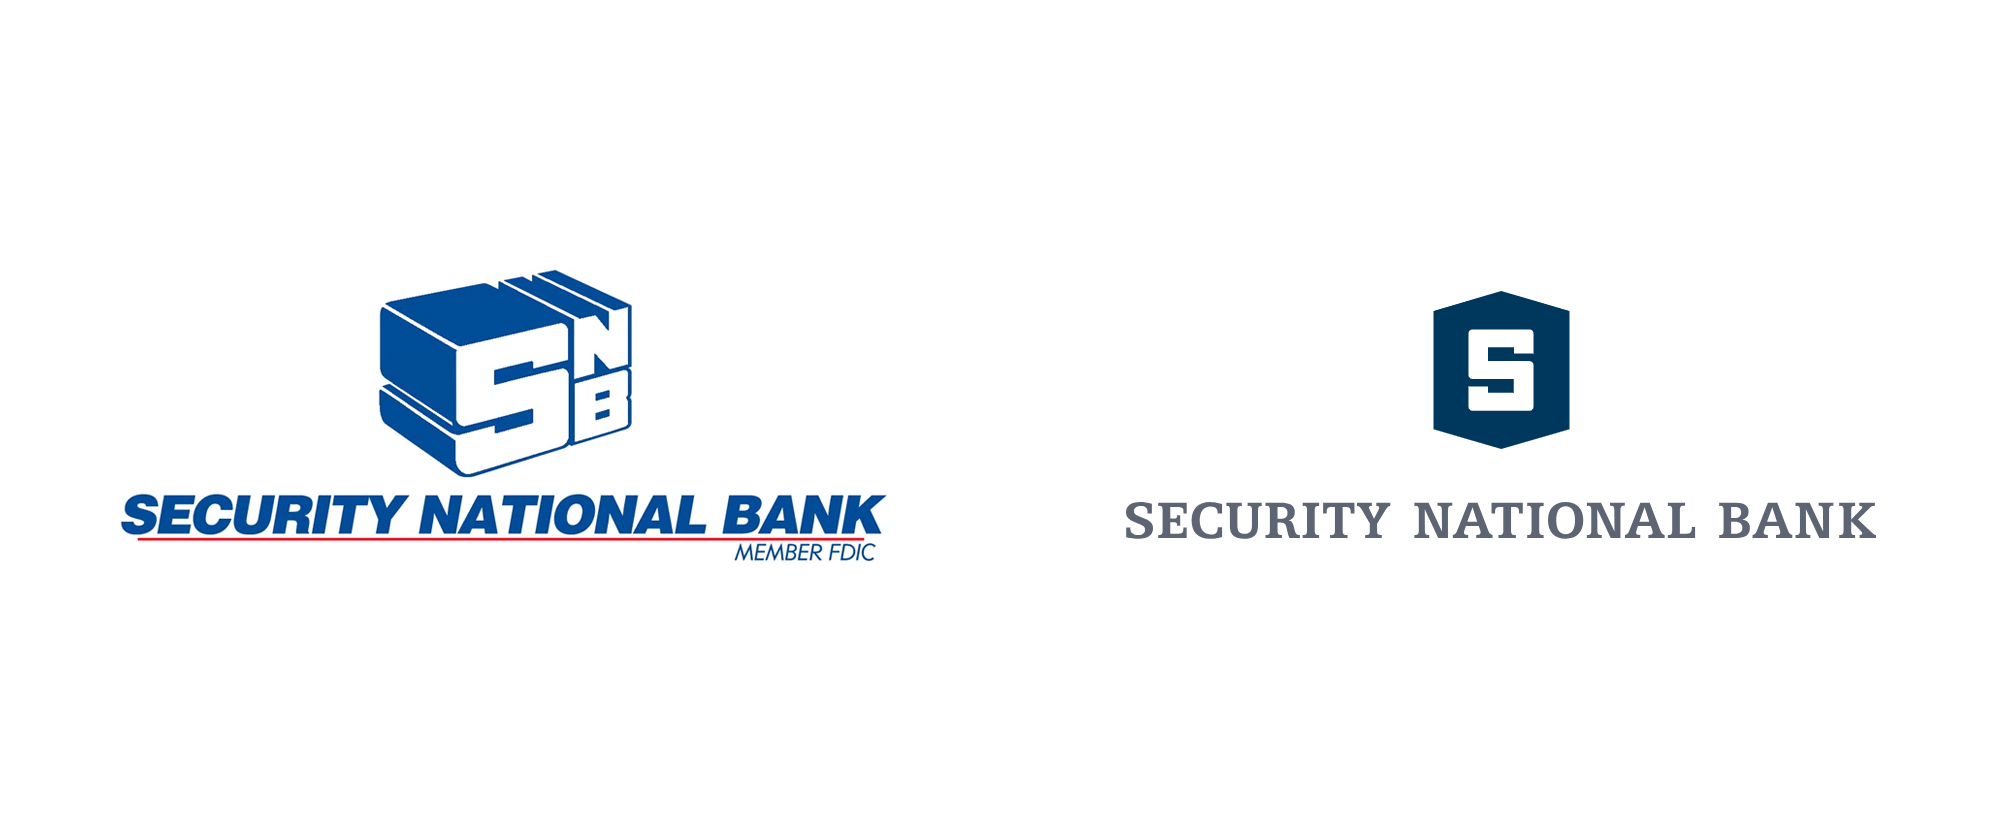 New Logo for Security National Bank